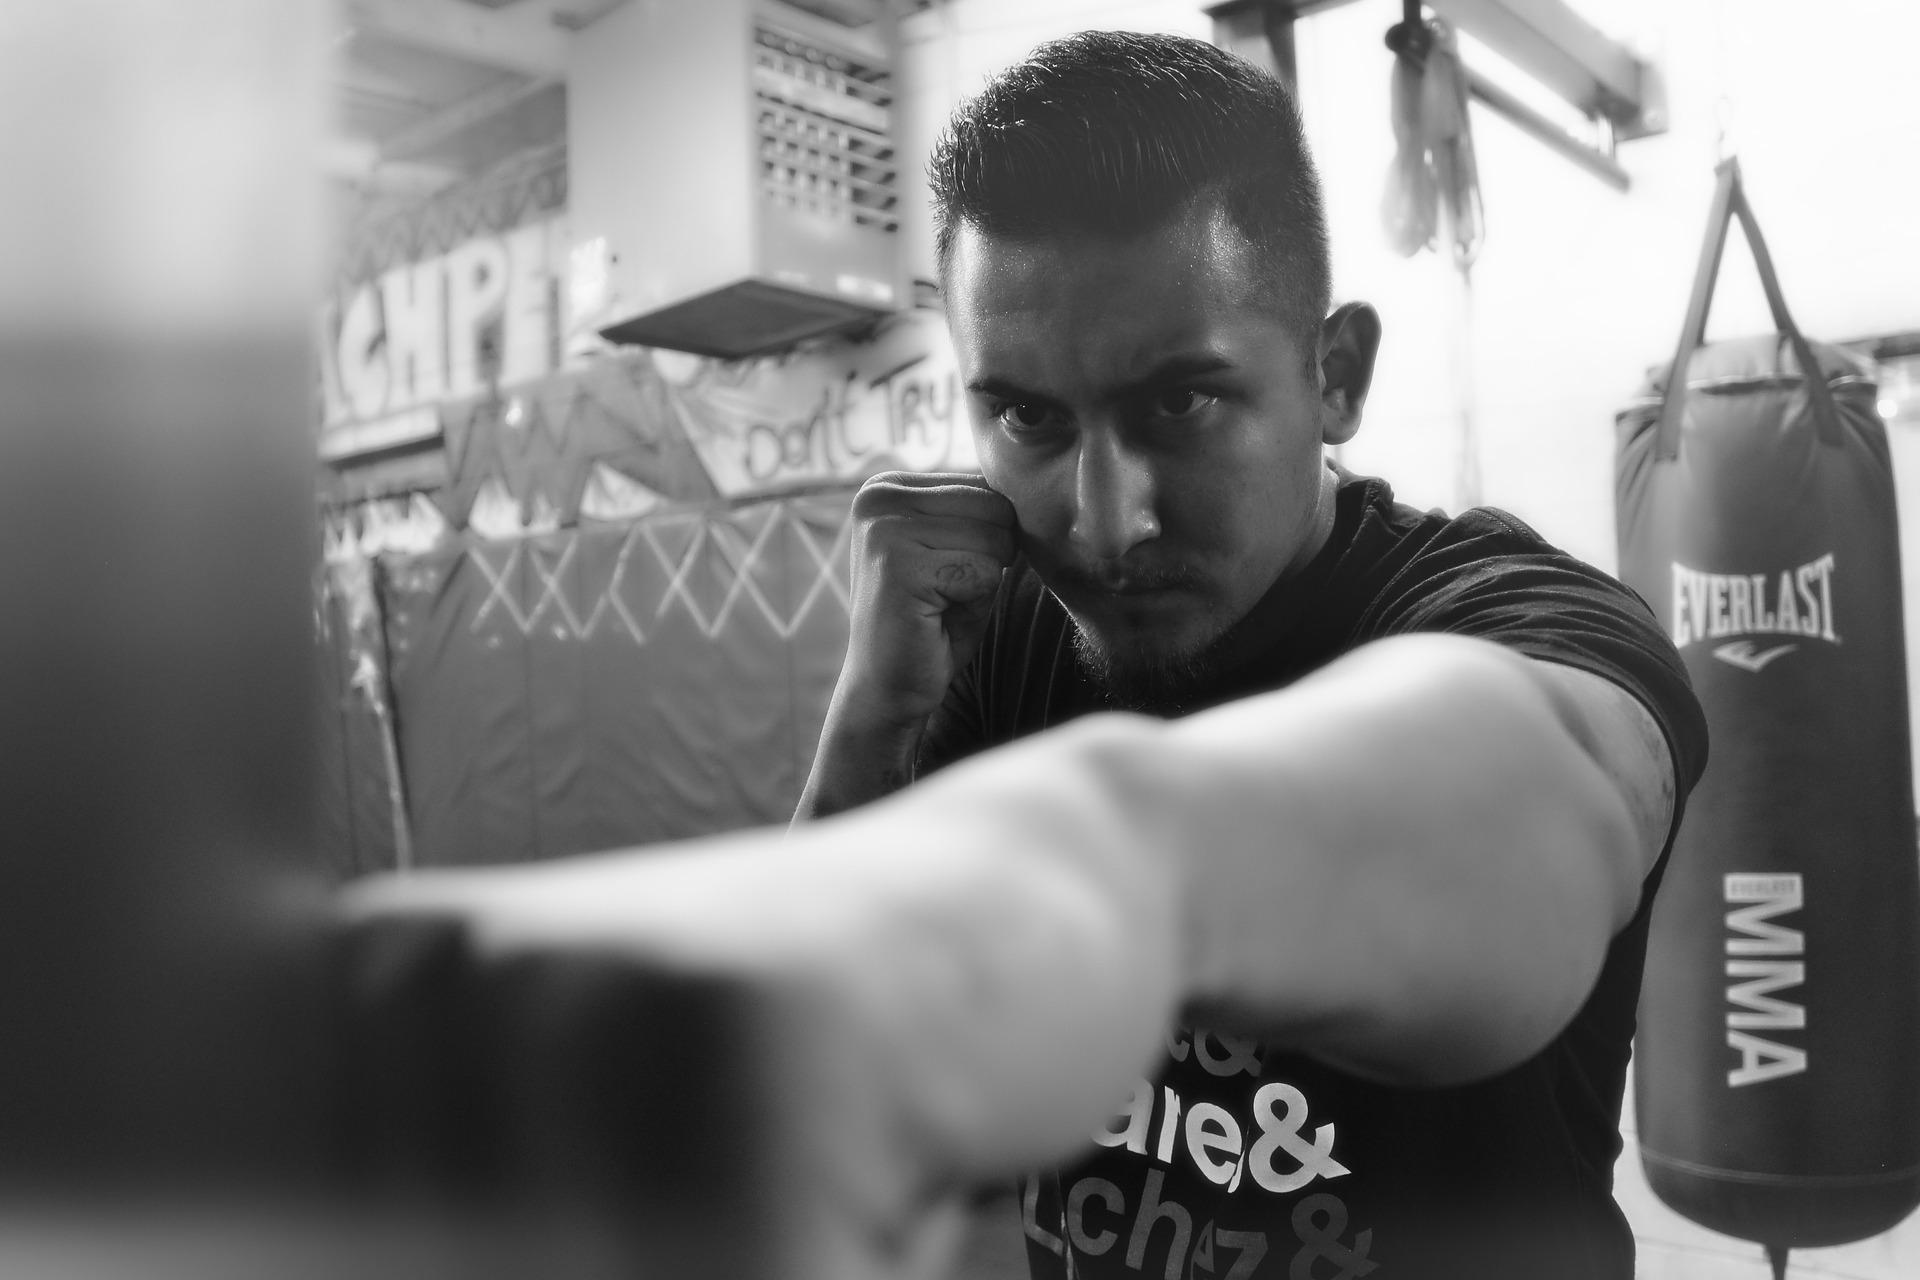 Top 5 Best Punching Bags for Beginners [Buying Guide]